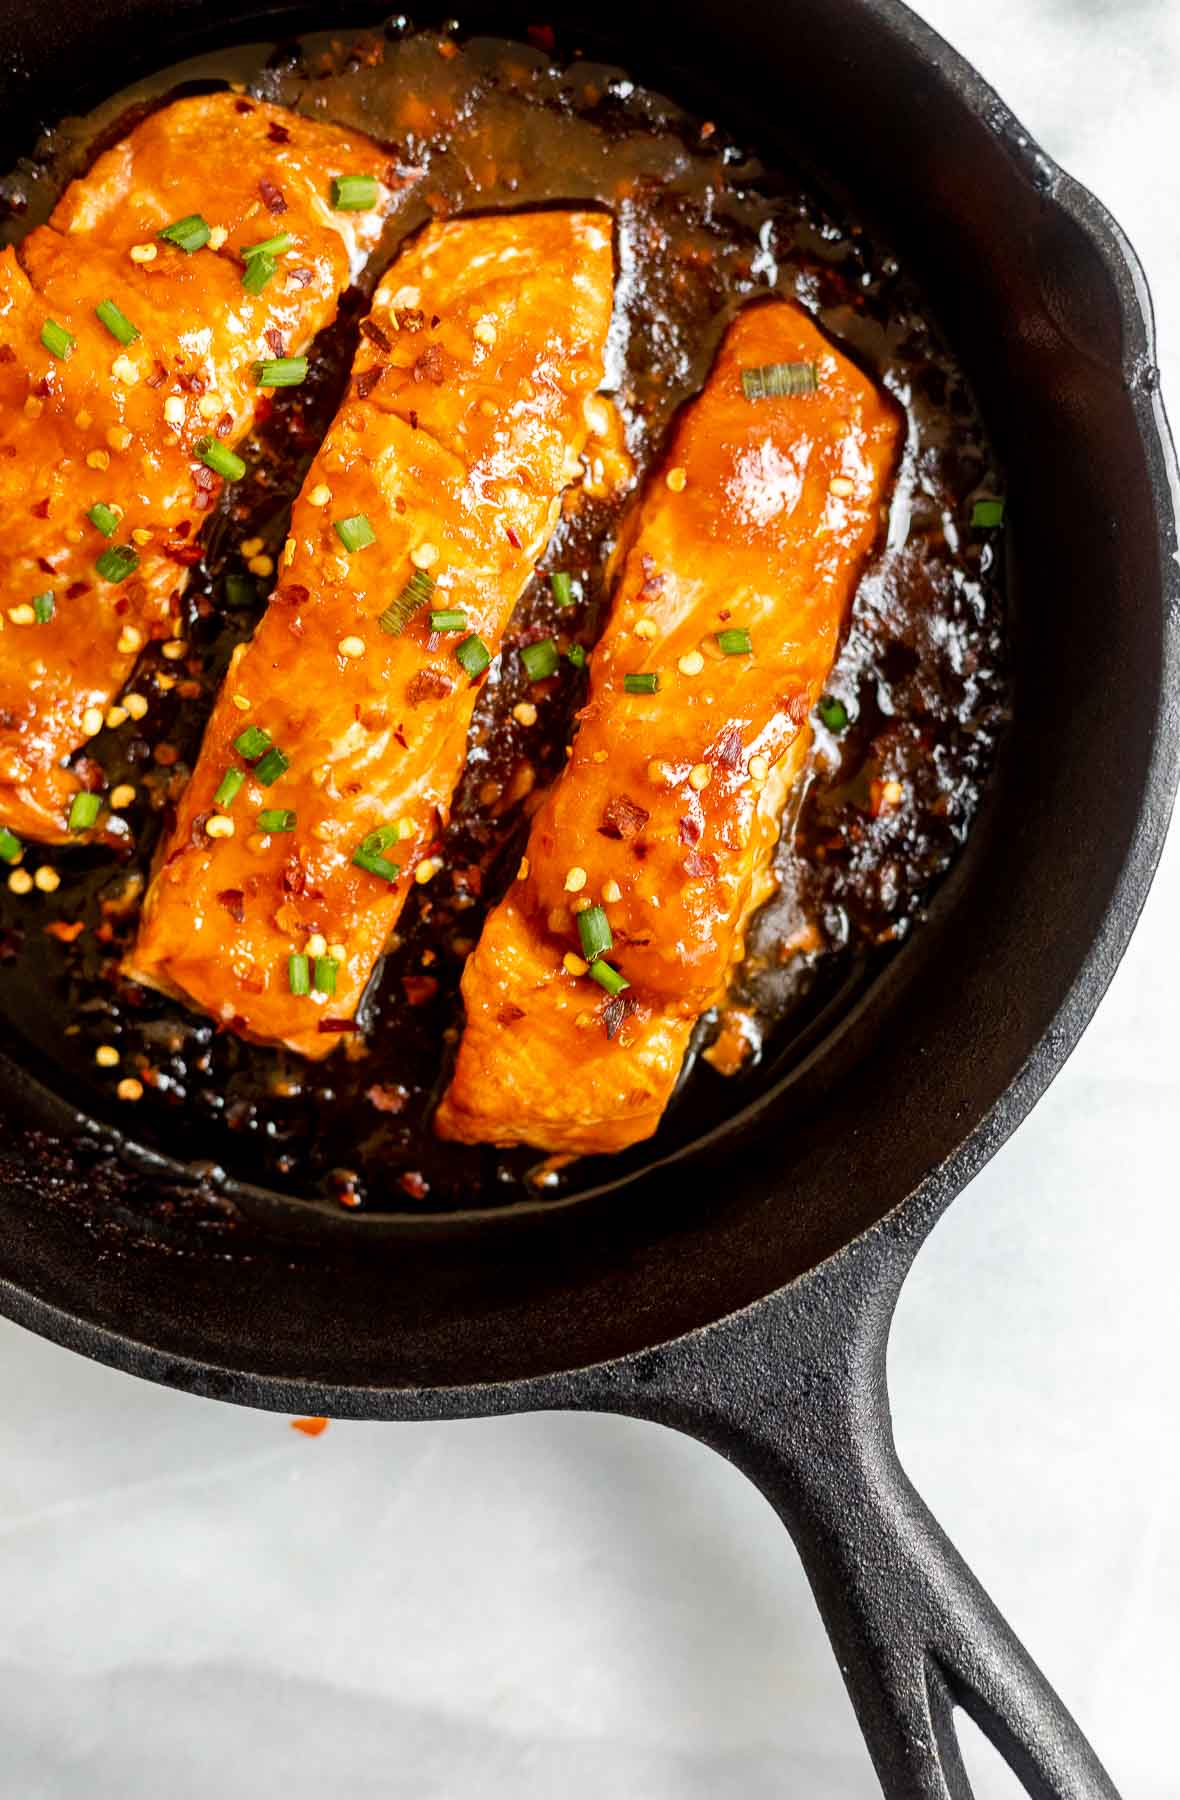 Pan fried orange salmon with chives on top in a skillet.